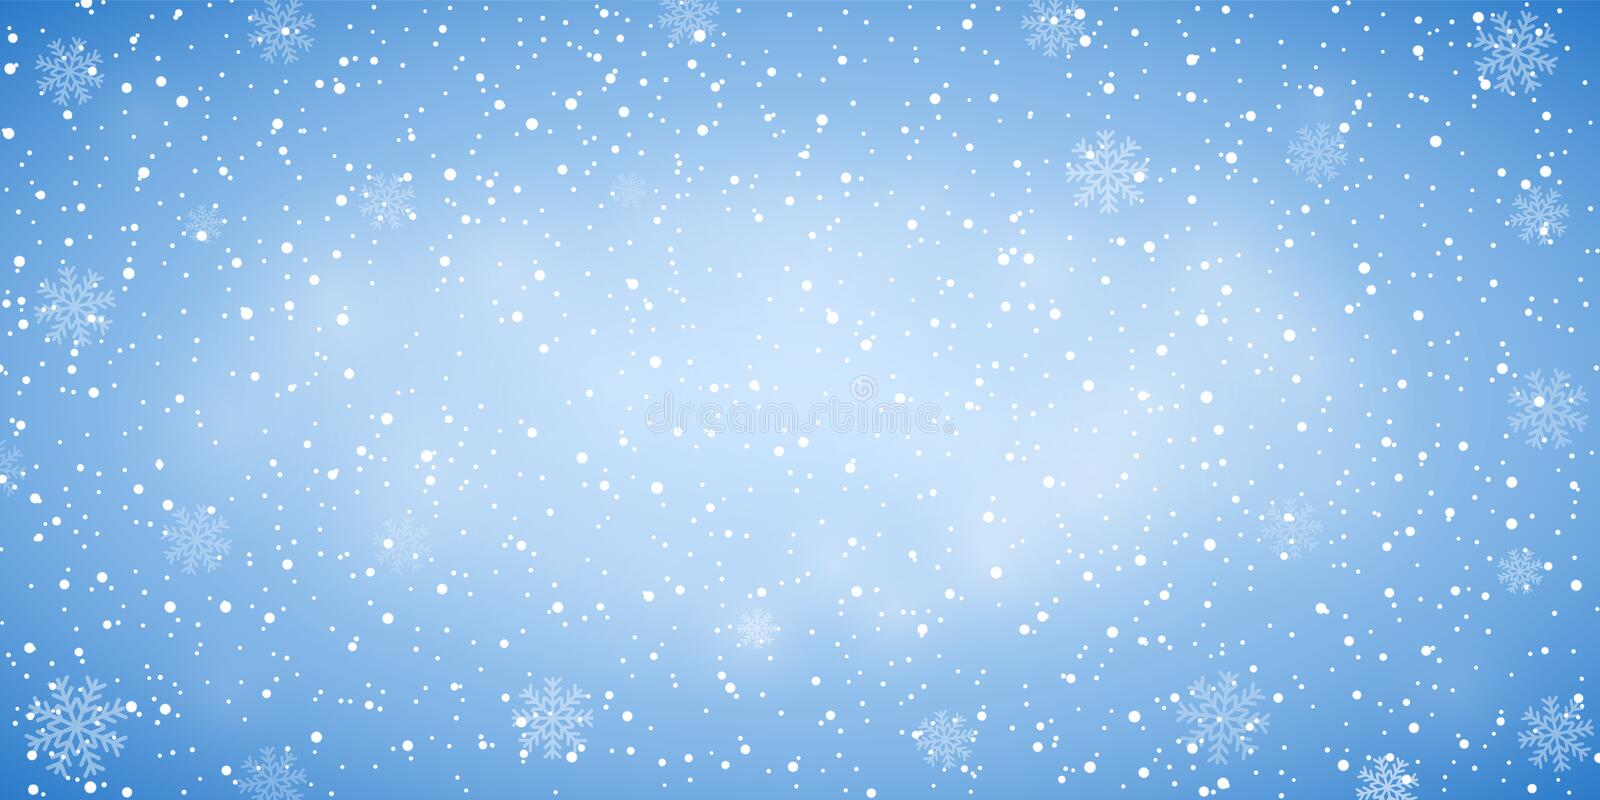 Snow blue background. Christmas snowy winter design. White falling snowflakes, abstract landscape. Cold weather effect vector illustration